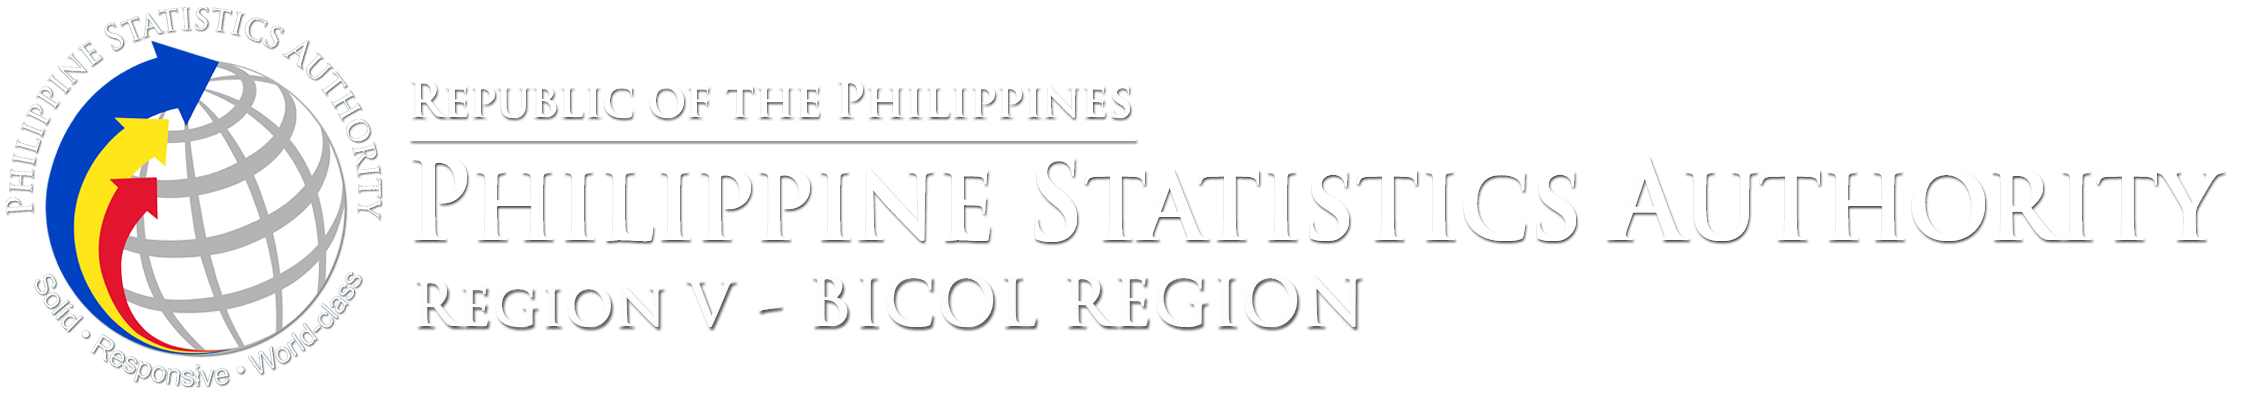 Philippine Statistics Authority|RSSO V